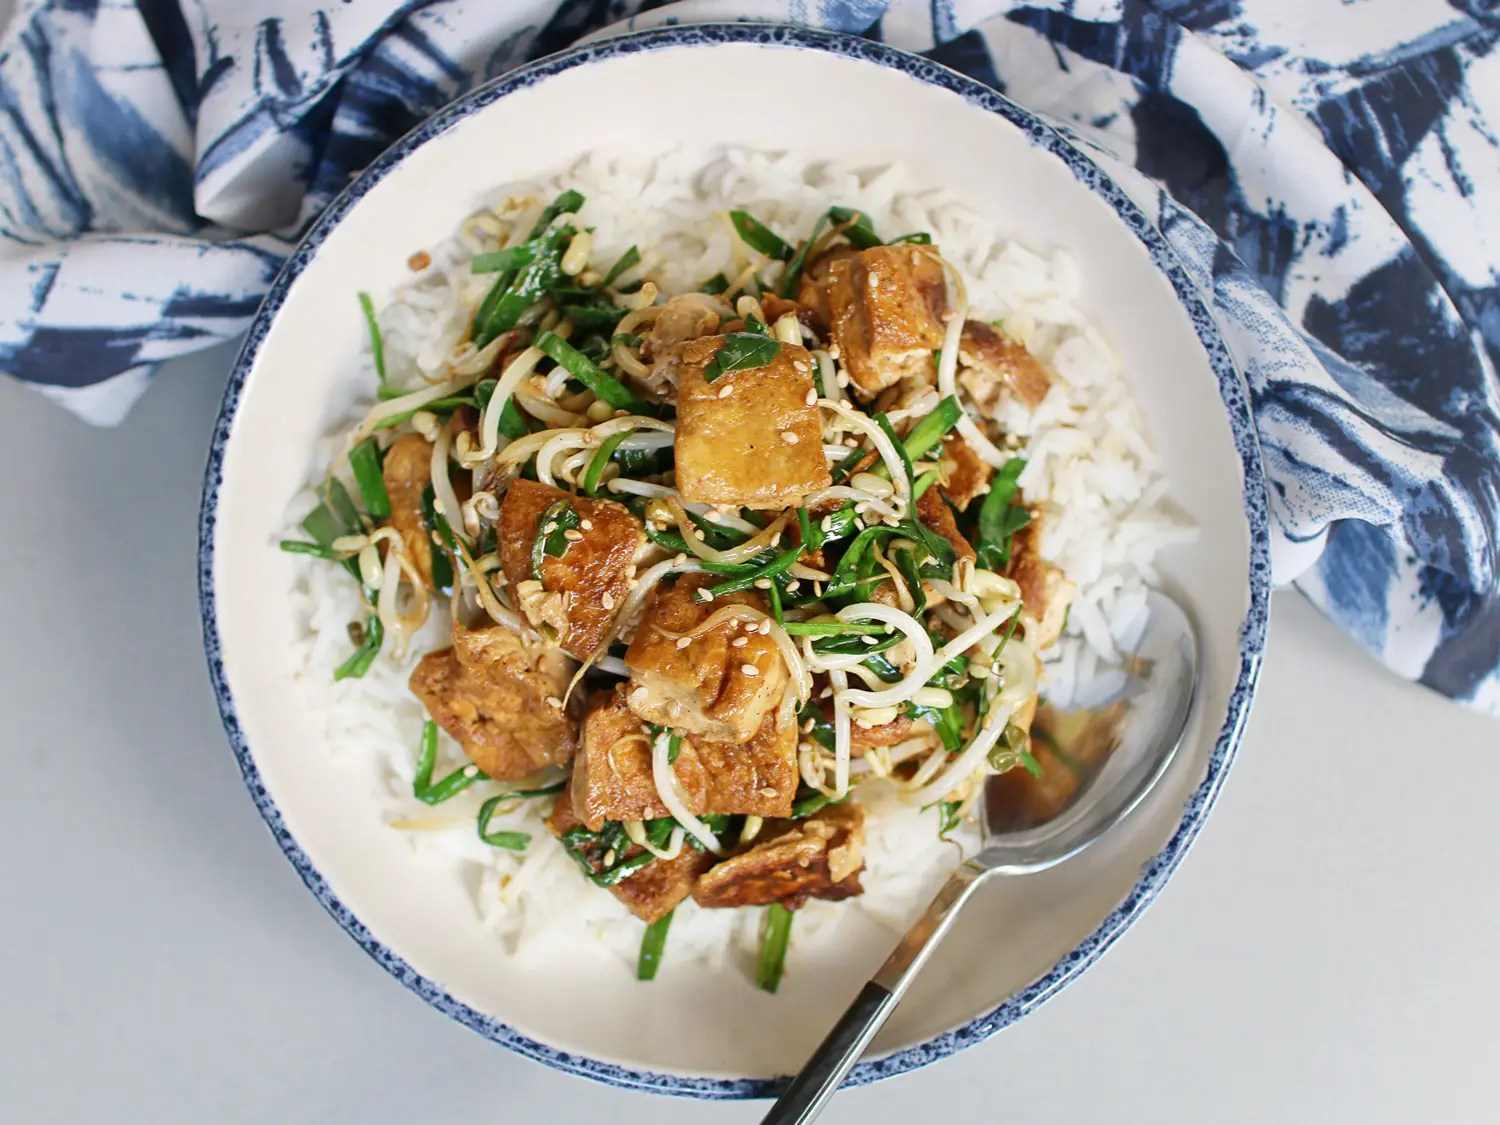 Stir-fried tofu with bean sprouts and Chinese chives